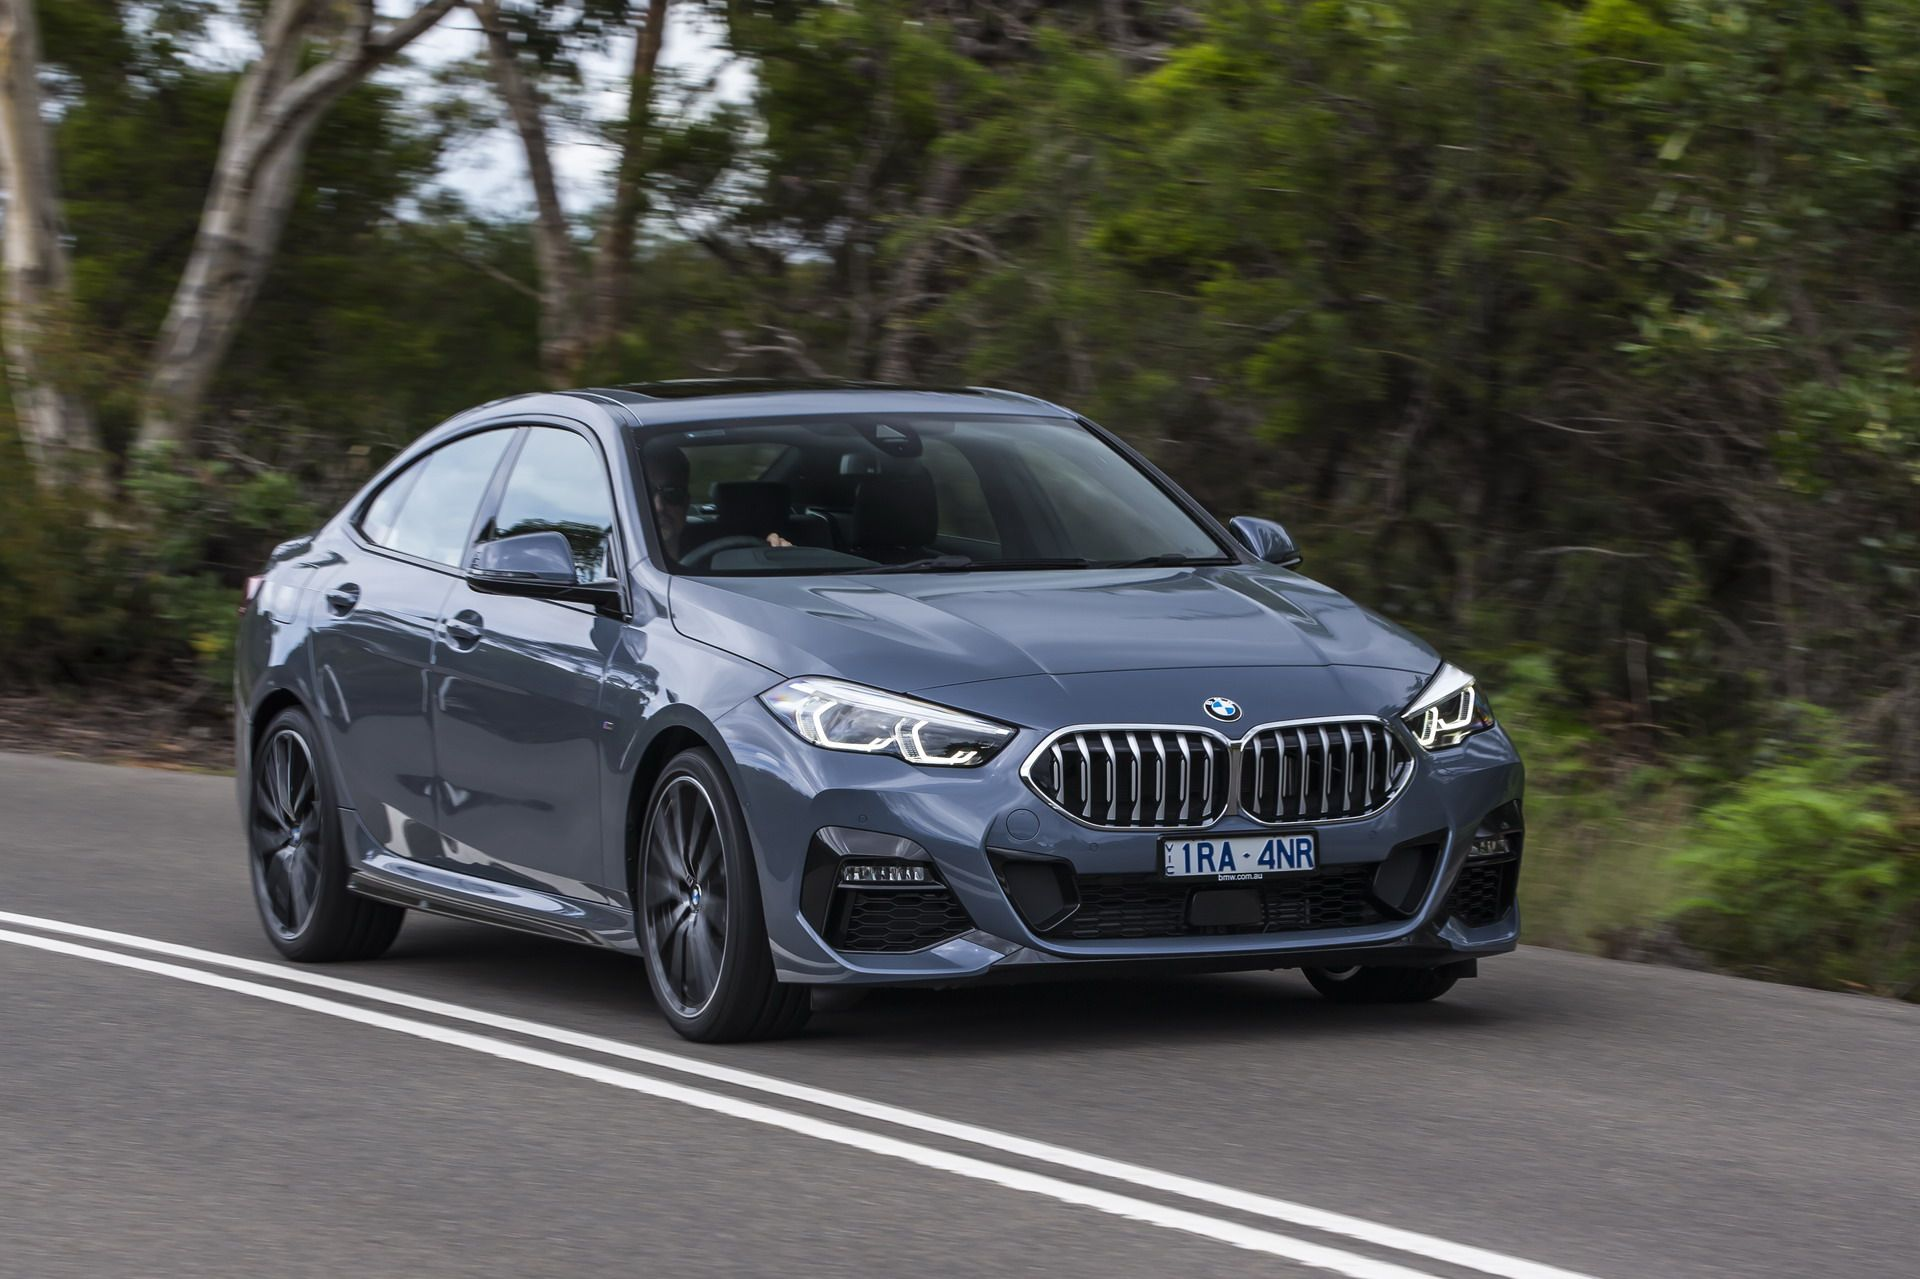 2020 Bmw 2 Series Gran Coupe Tested In New Zealand In 2020 Bmw Bmw 3 Series Gran Coupe